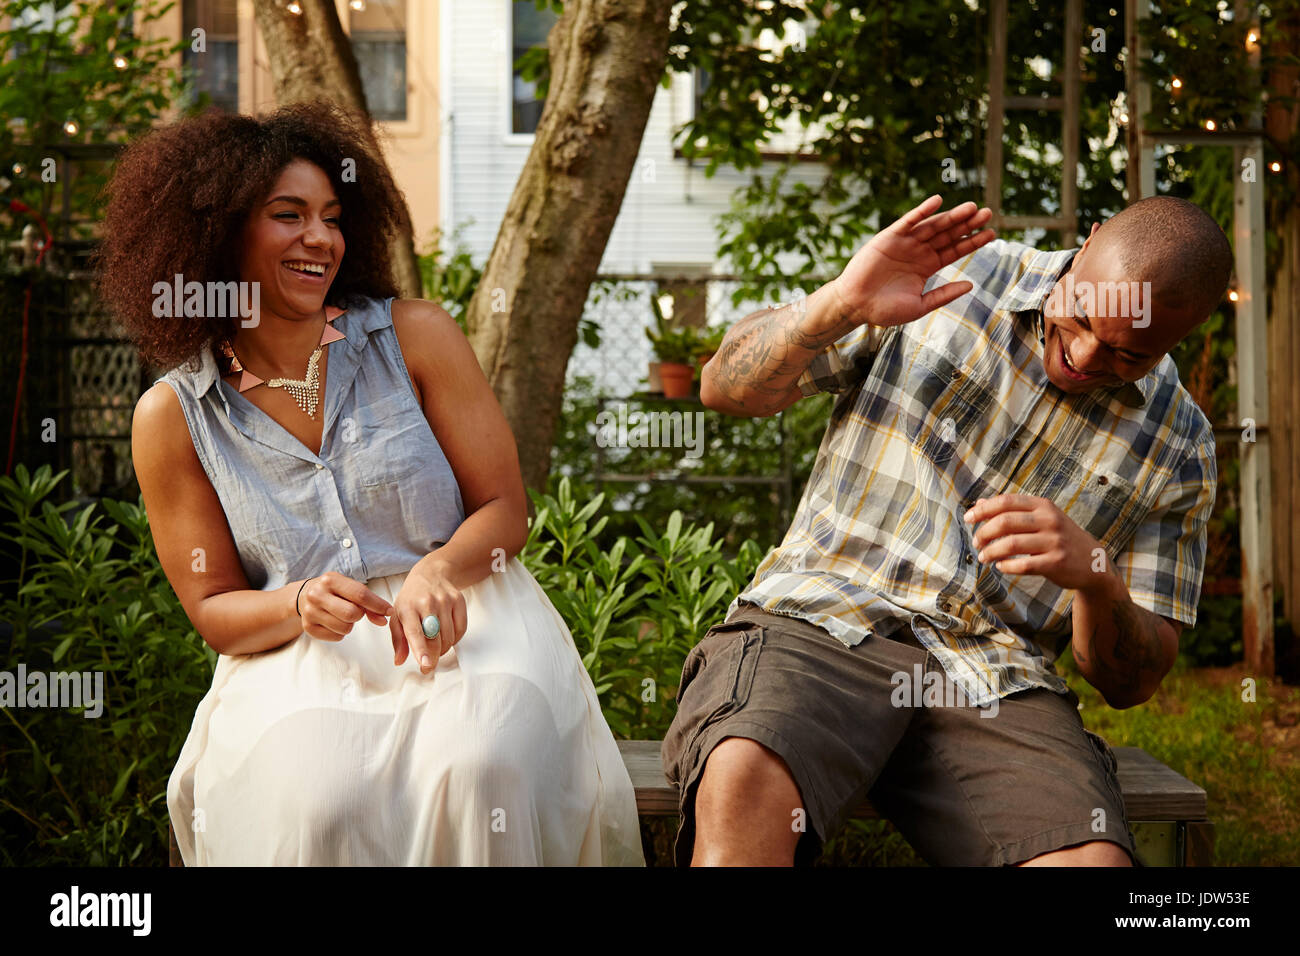 Mid adult man laughing with woman at garden party Photo Stock